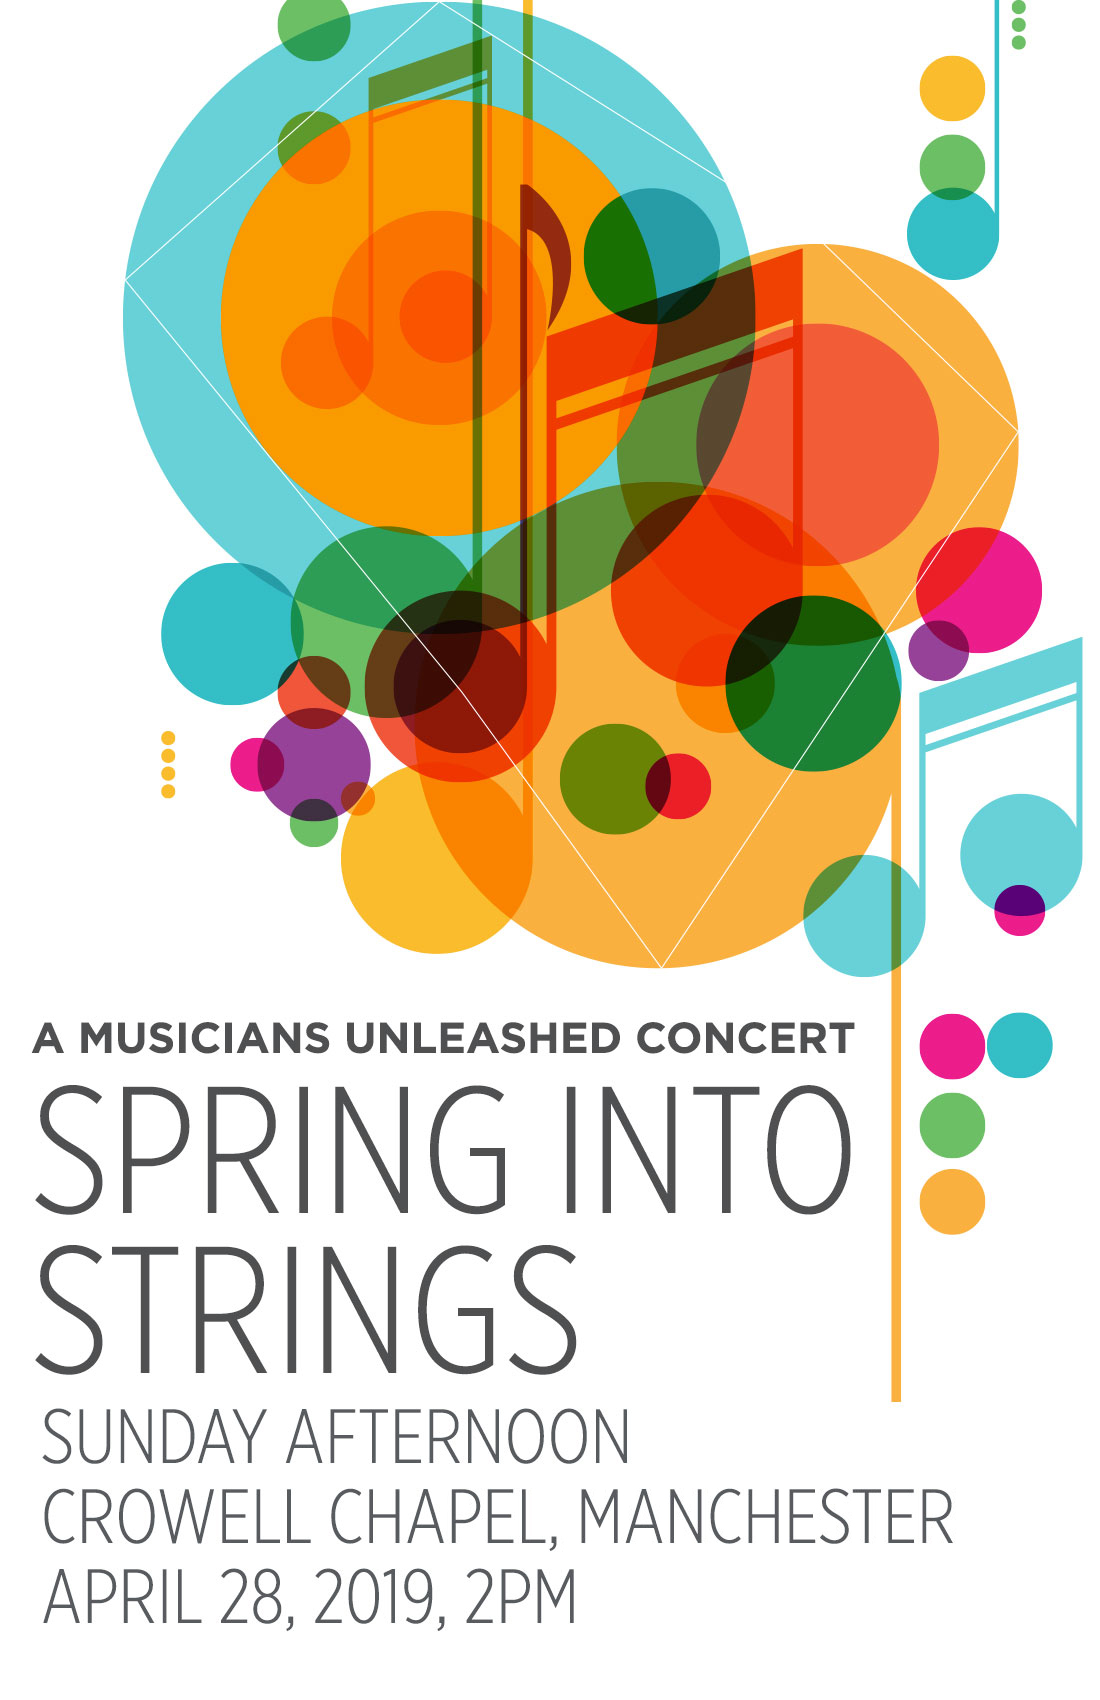 Spring Into Strings